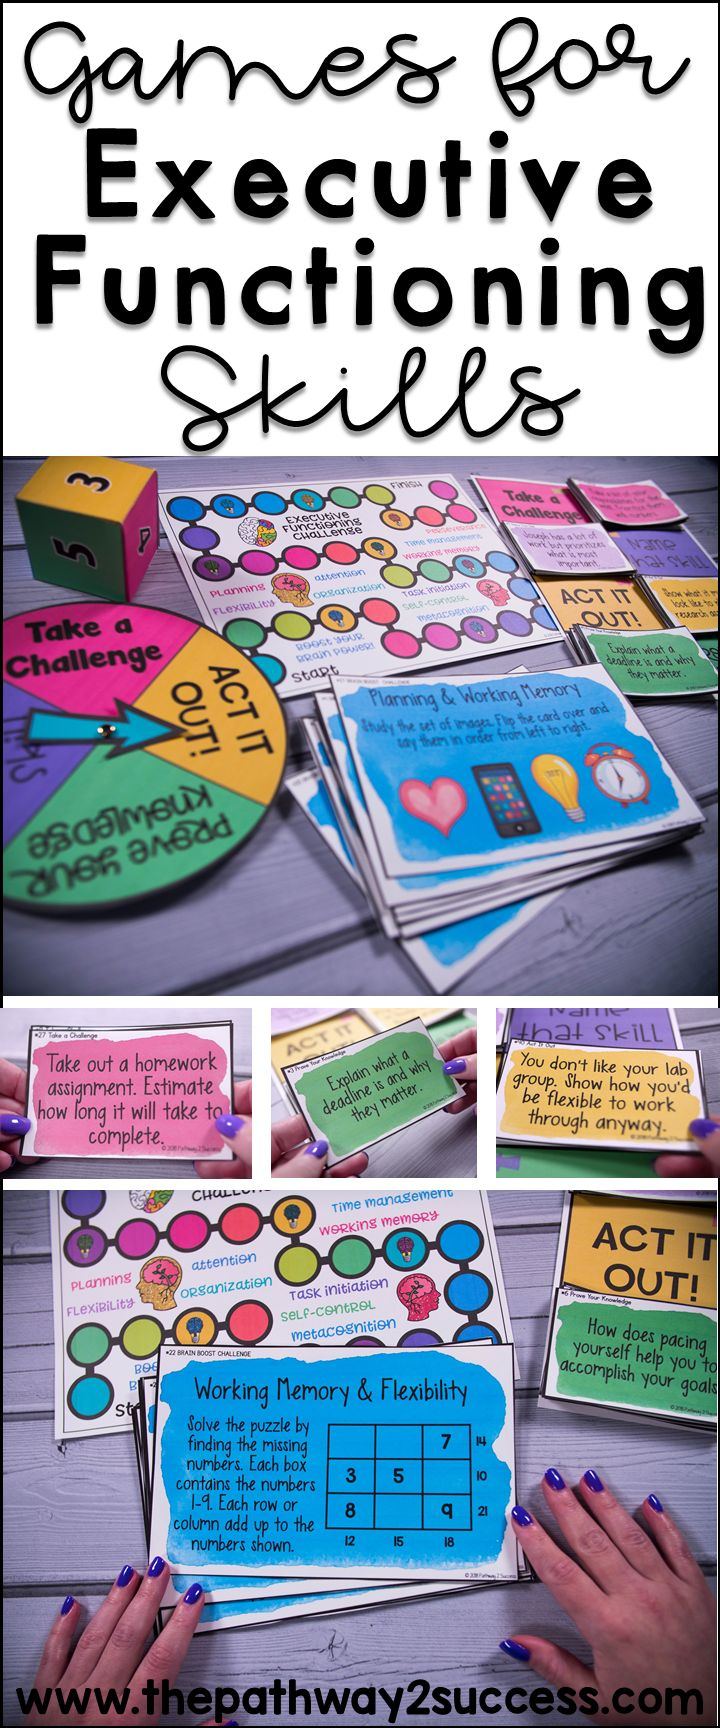 Games and activities that teach critical executive functioning skills, including self-control, attention, organization, flexibility, working memory, planning, and more! #pathway2success #executivefunctioning